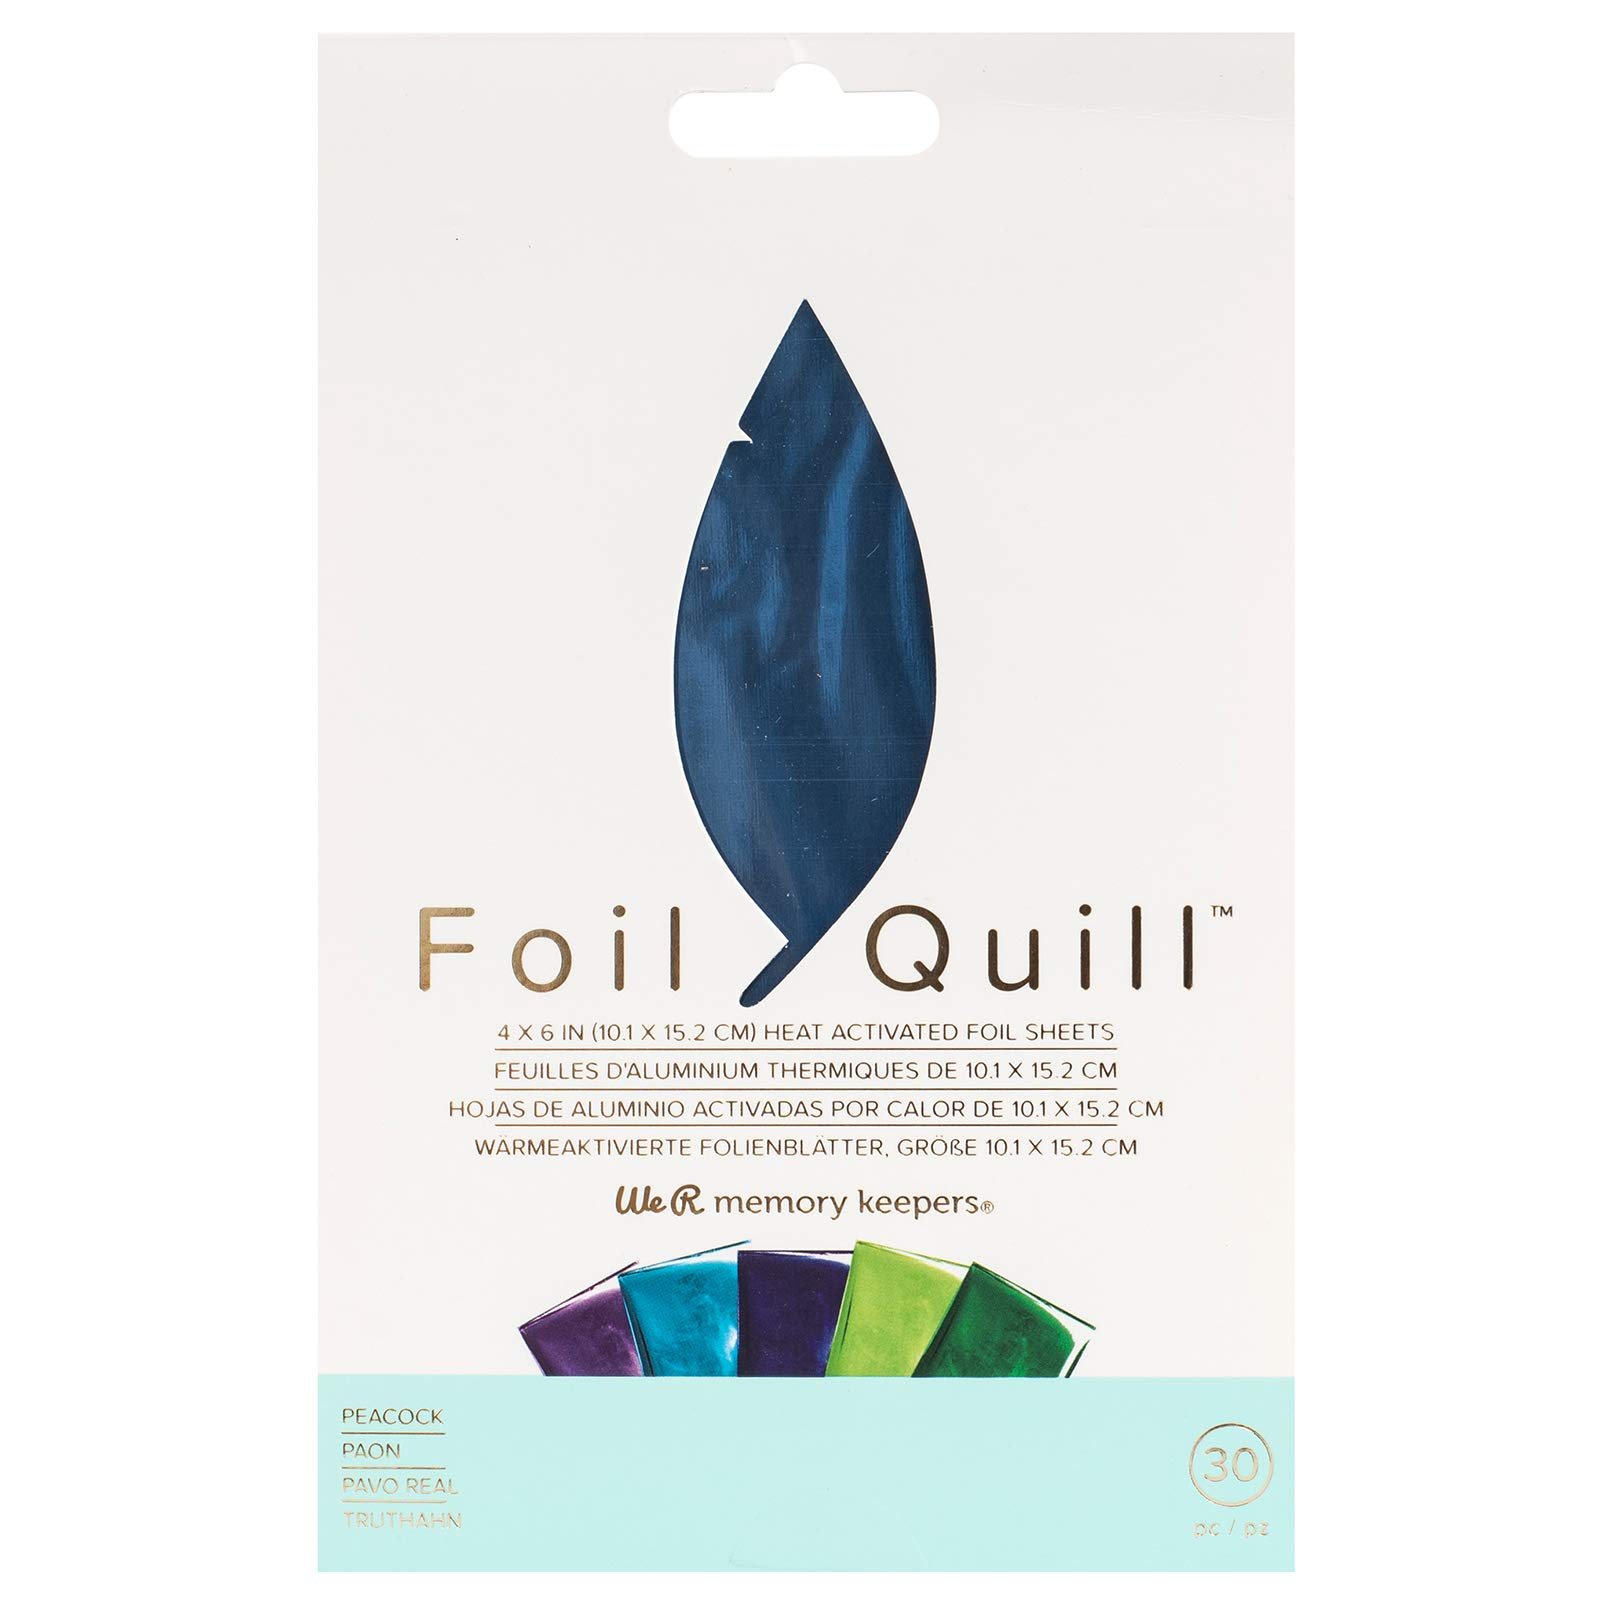 Foil Quill Foil Pack with 30 Foil Sheets - Peacock